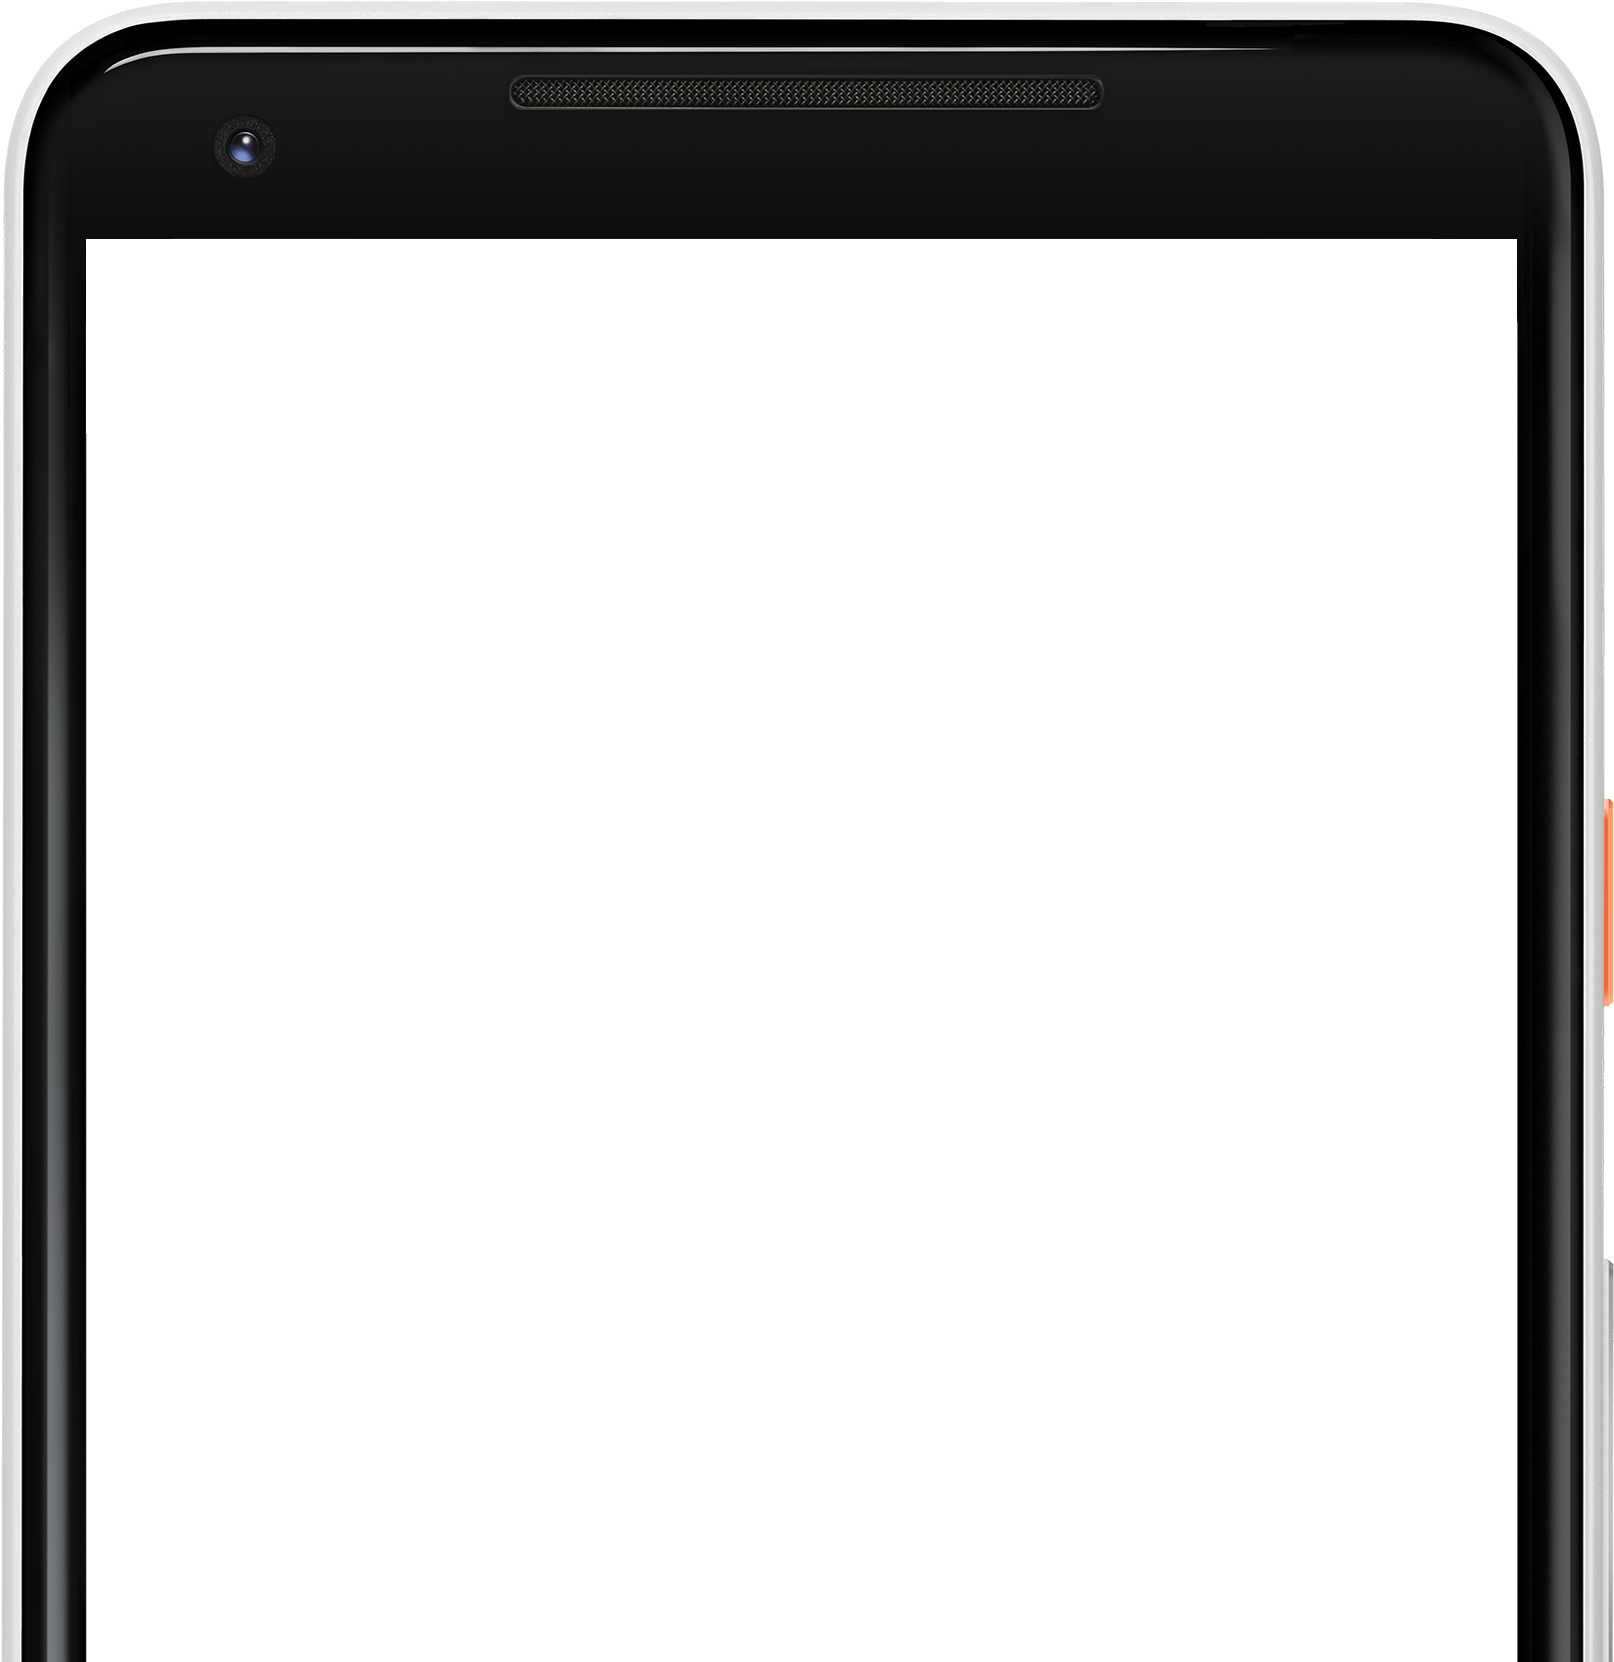 Mobile Frame Without Background Clipart - Full Size Clipart